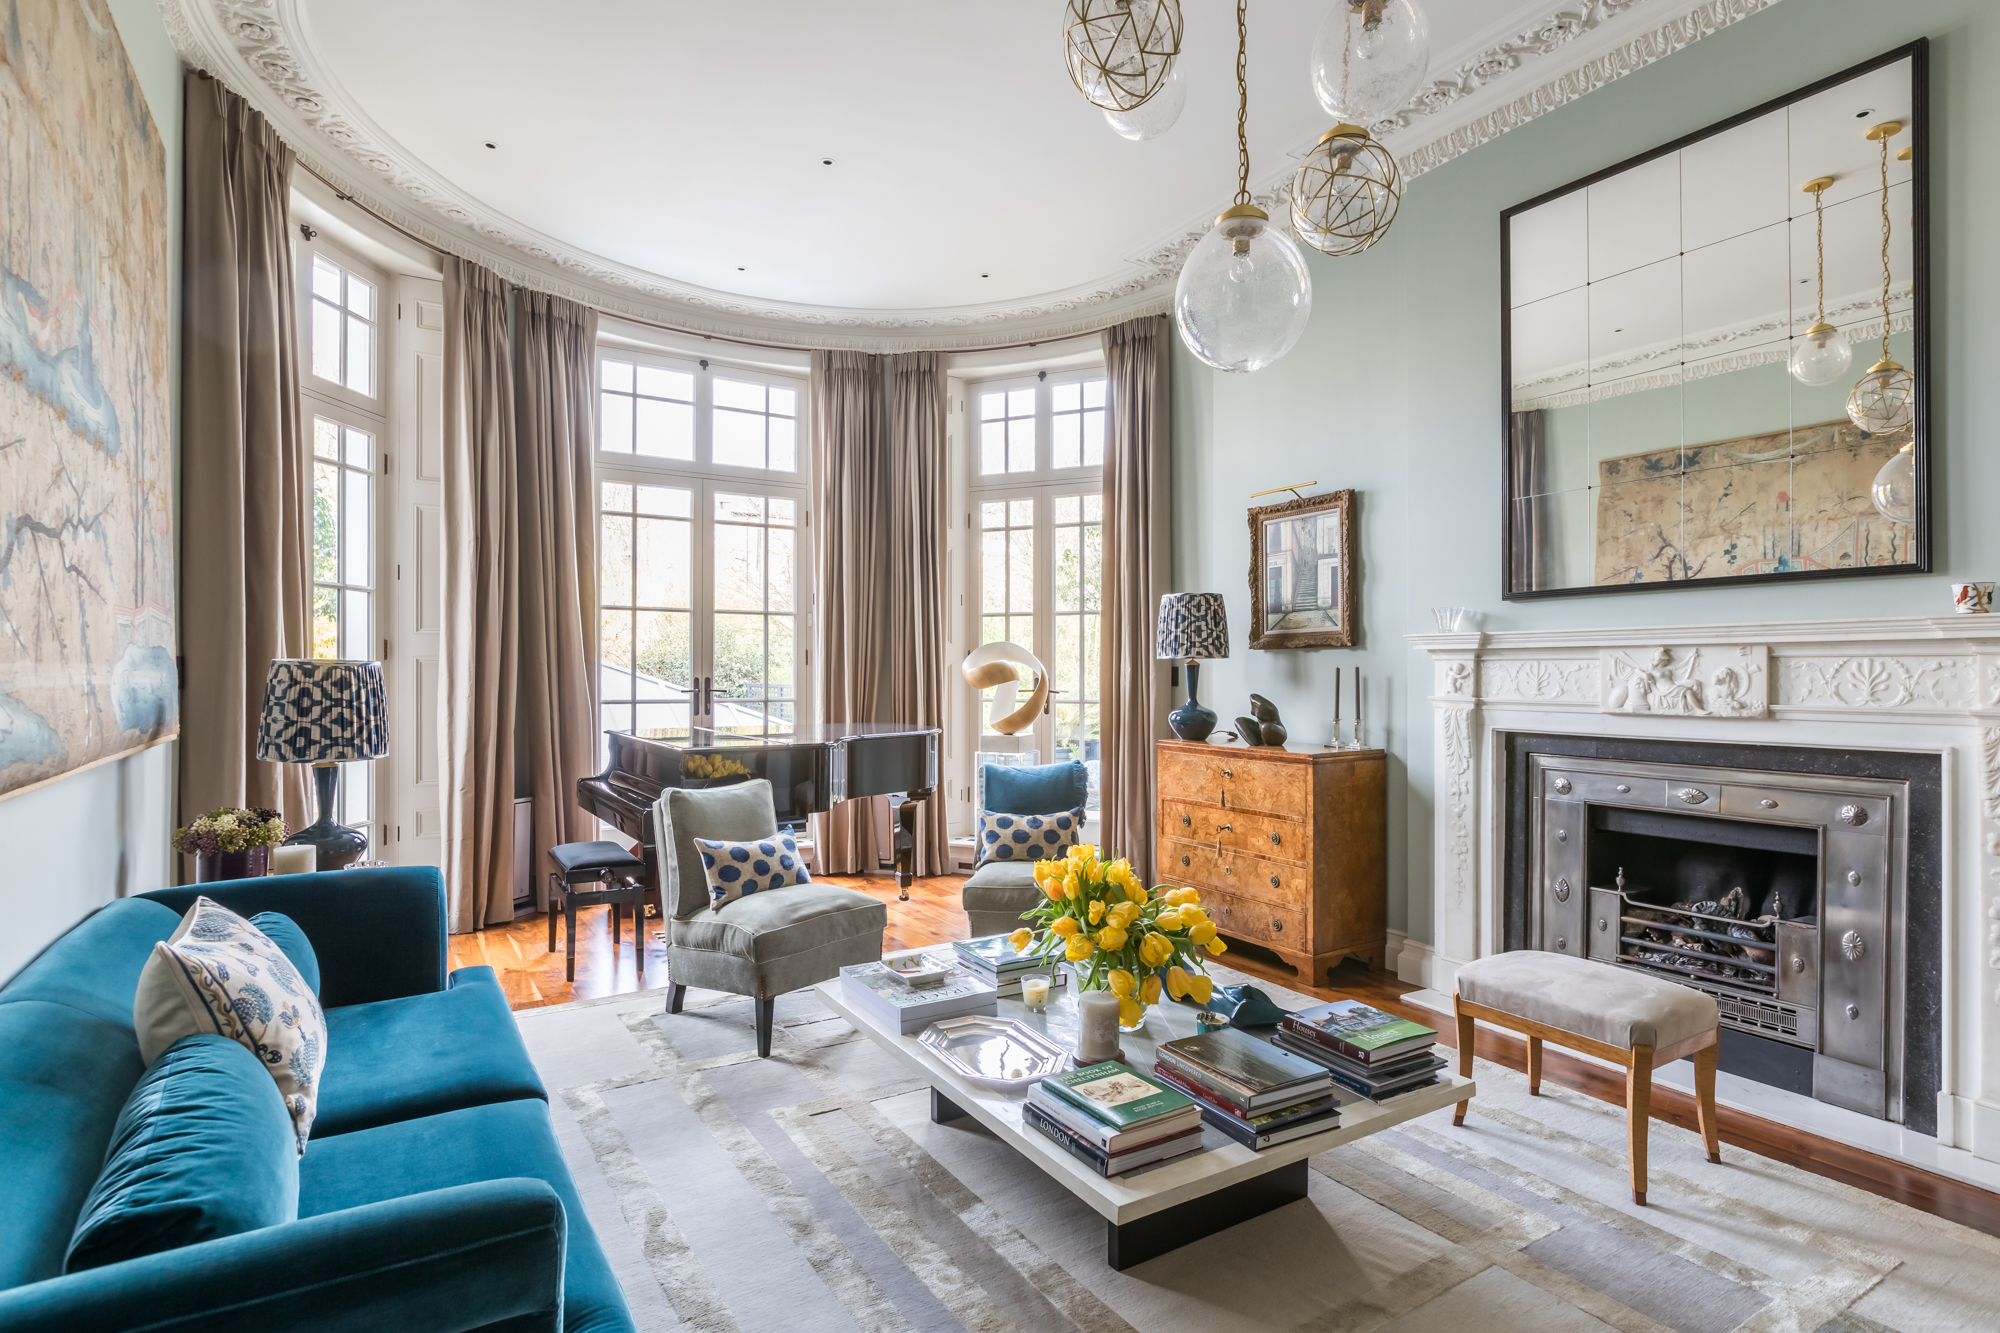 jonathan bond, interior photographer, living room, holland park, london